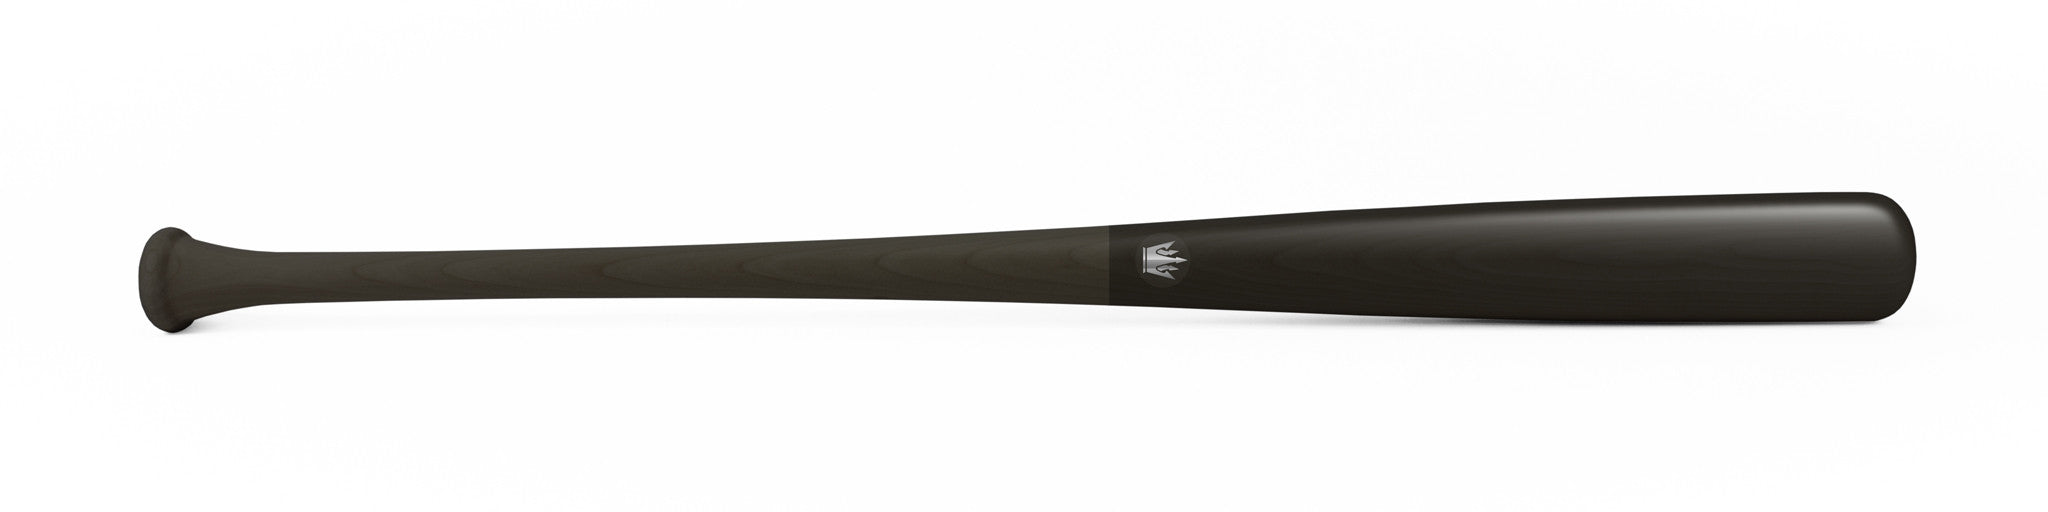 Wood bat - Birch model 271 Black Knight - 19